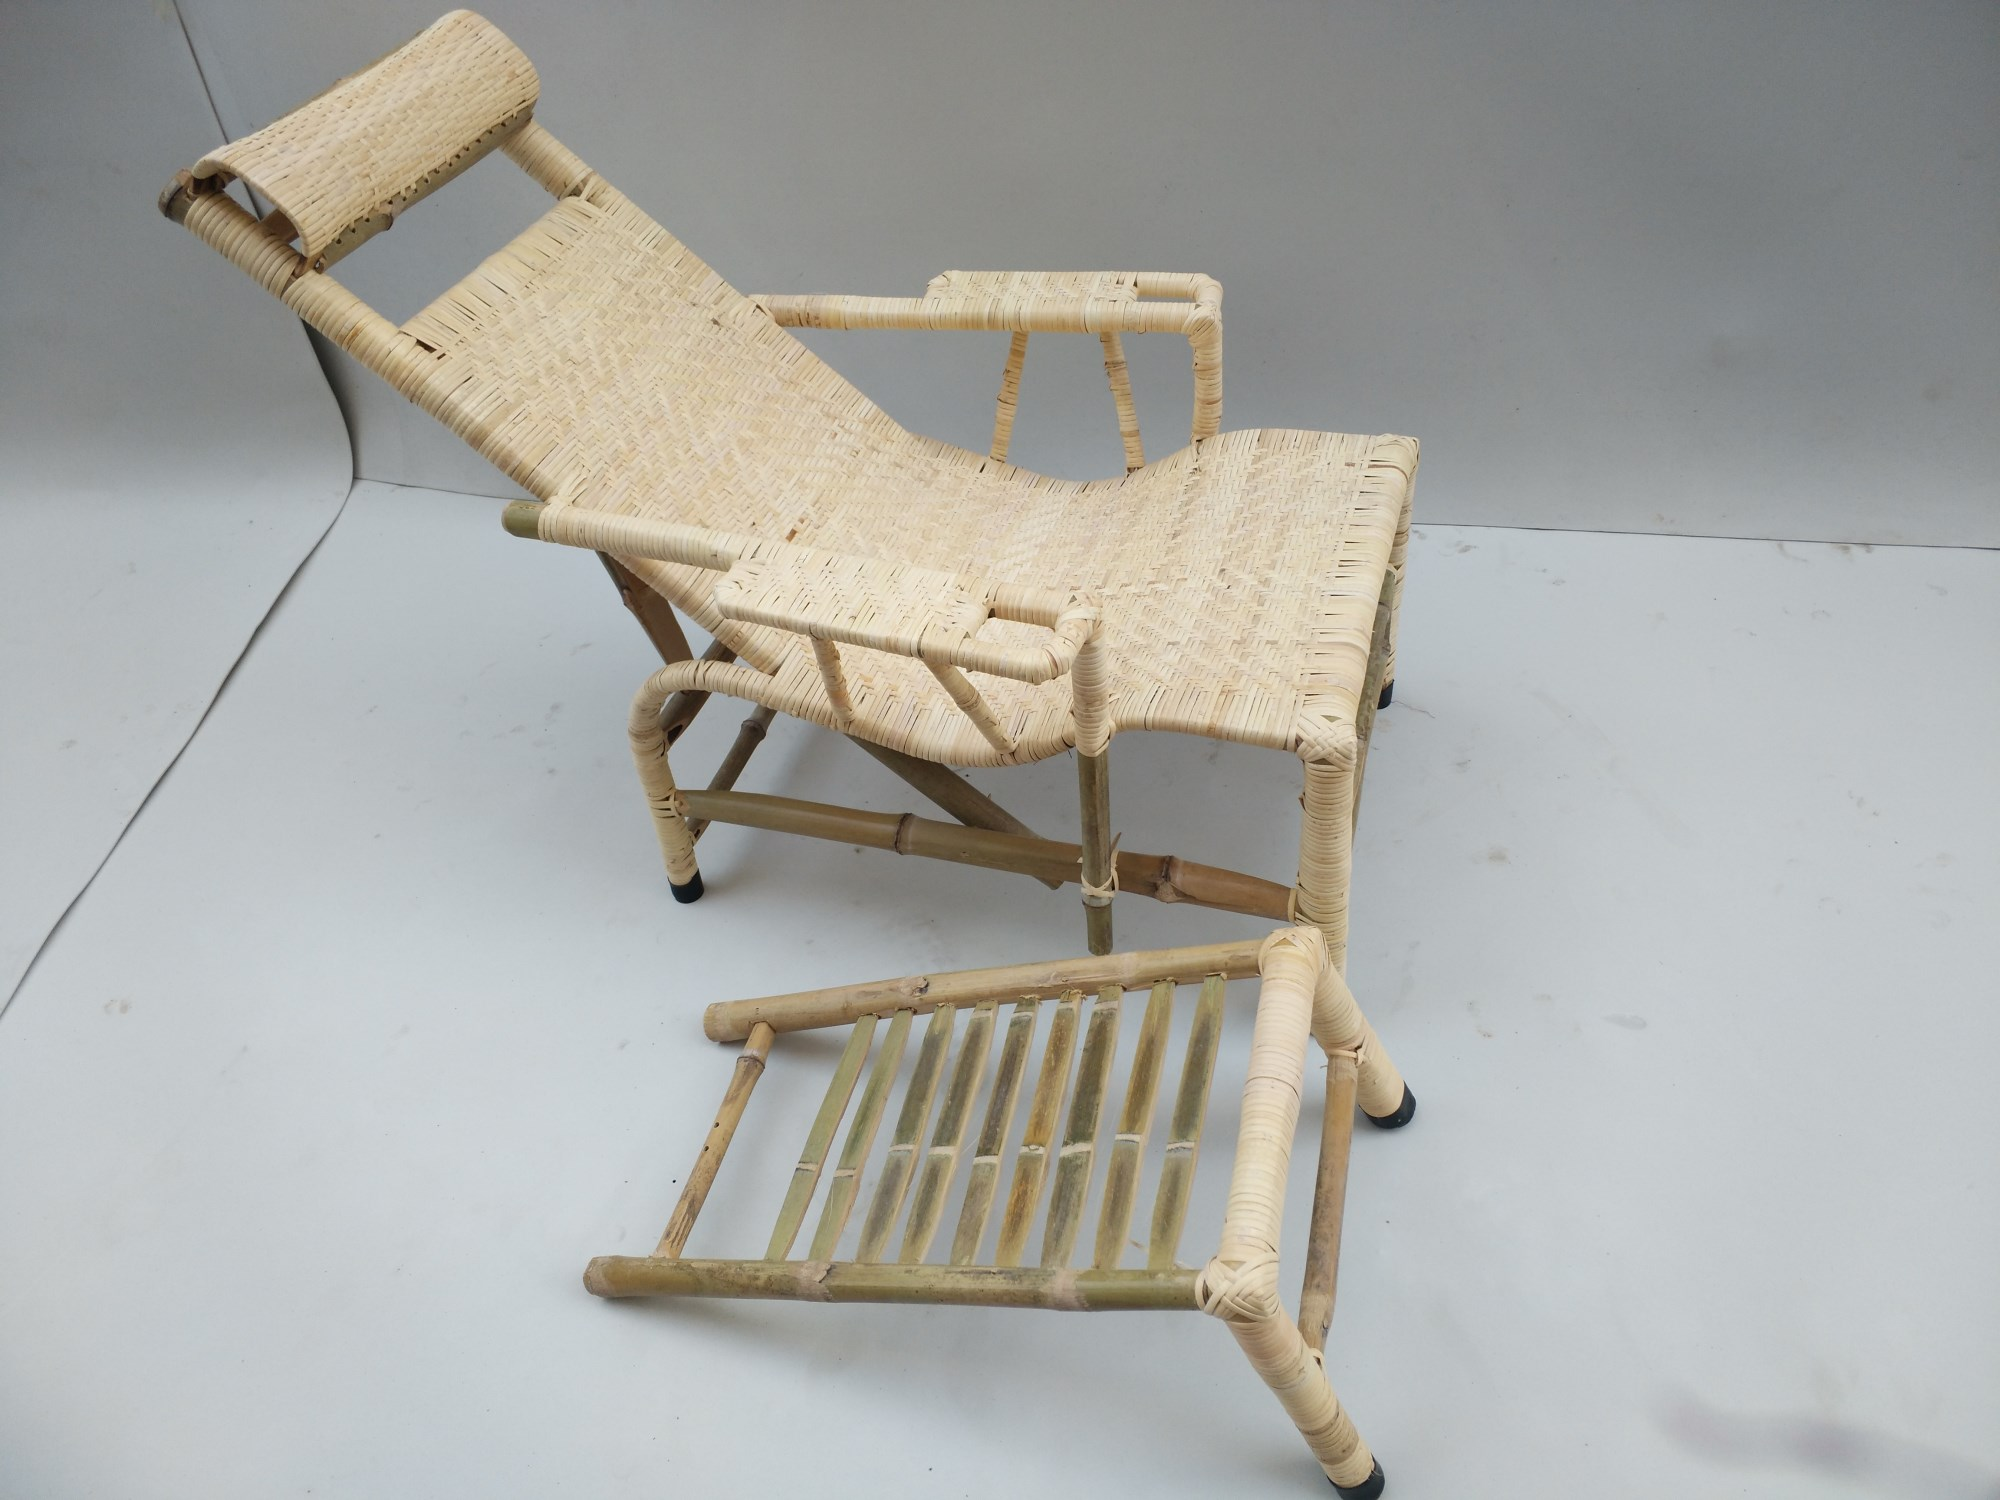 Old Bamboo plant rattan old man rattan chair rattan cool chair lunch chair handmade bamboo weaving couch factory Direct